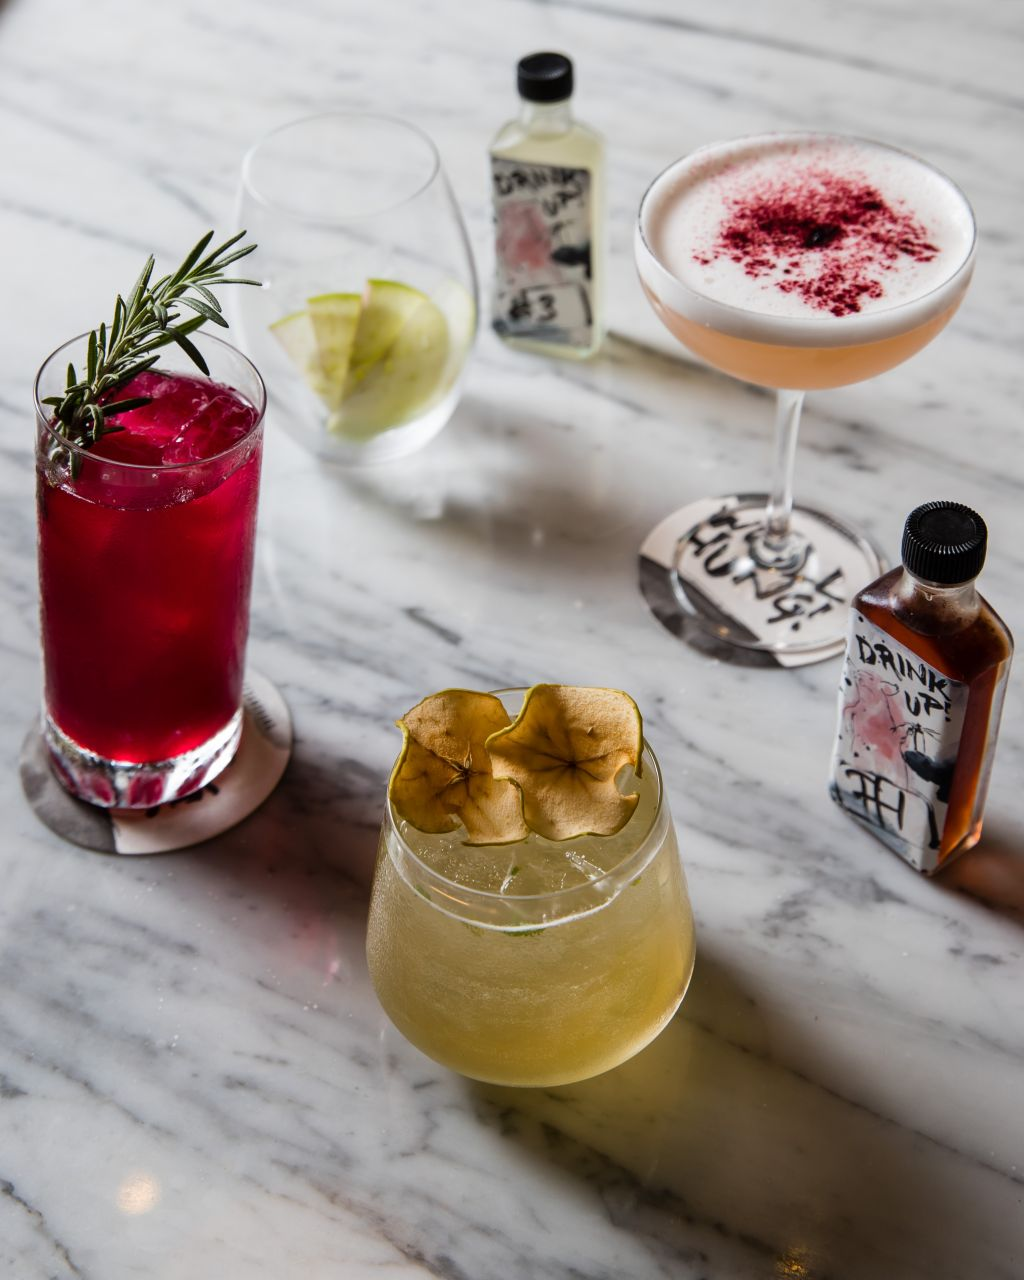 Have a cocktail for a good cause